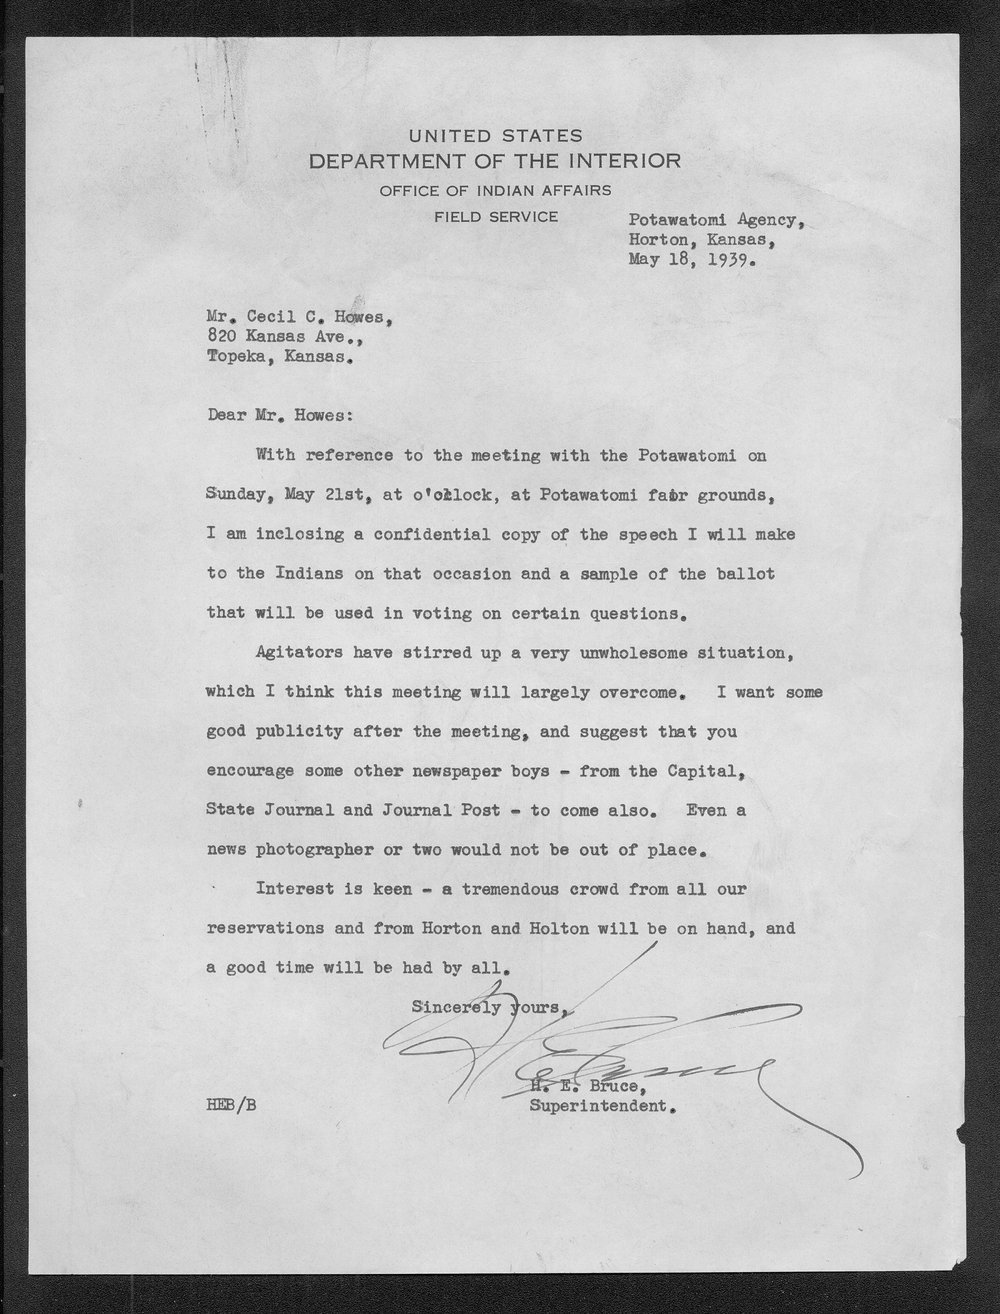 H.E. Bruce to Charles Cecil Howes - 1